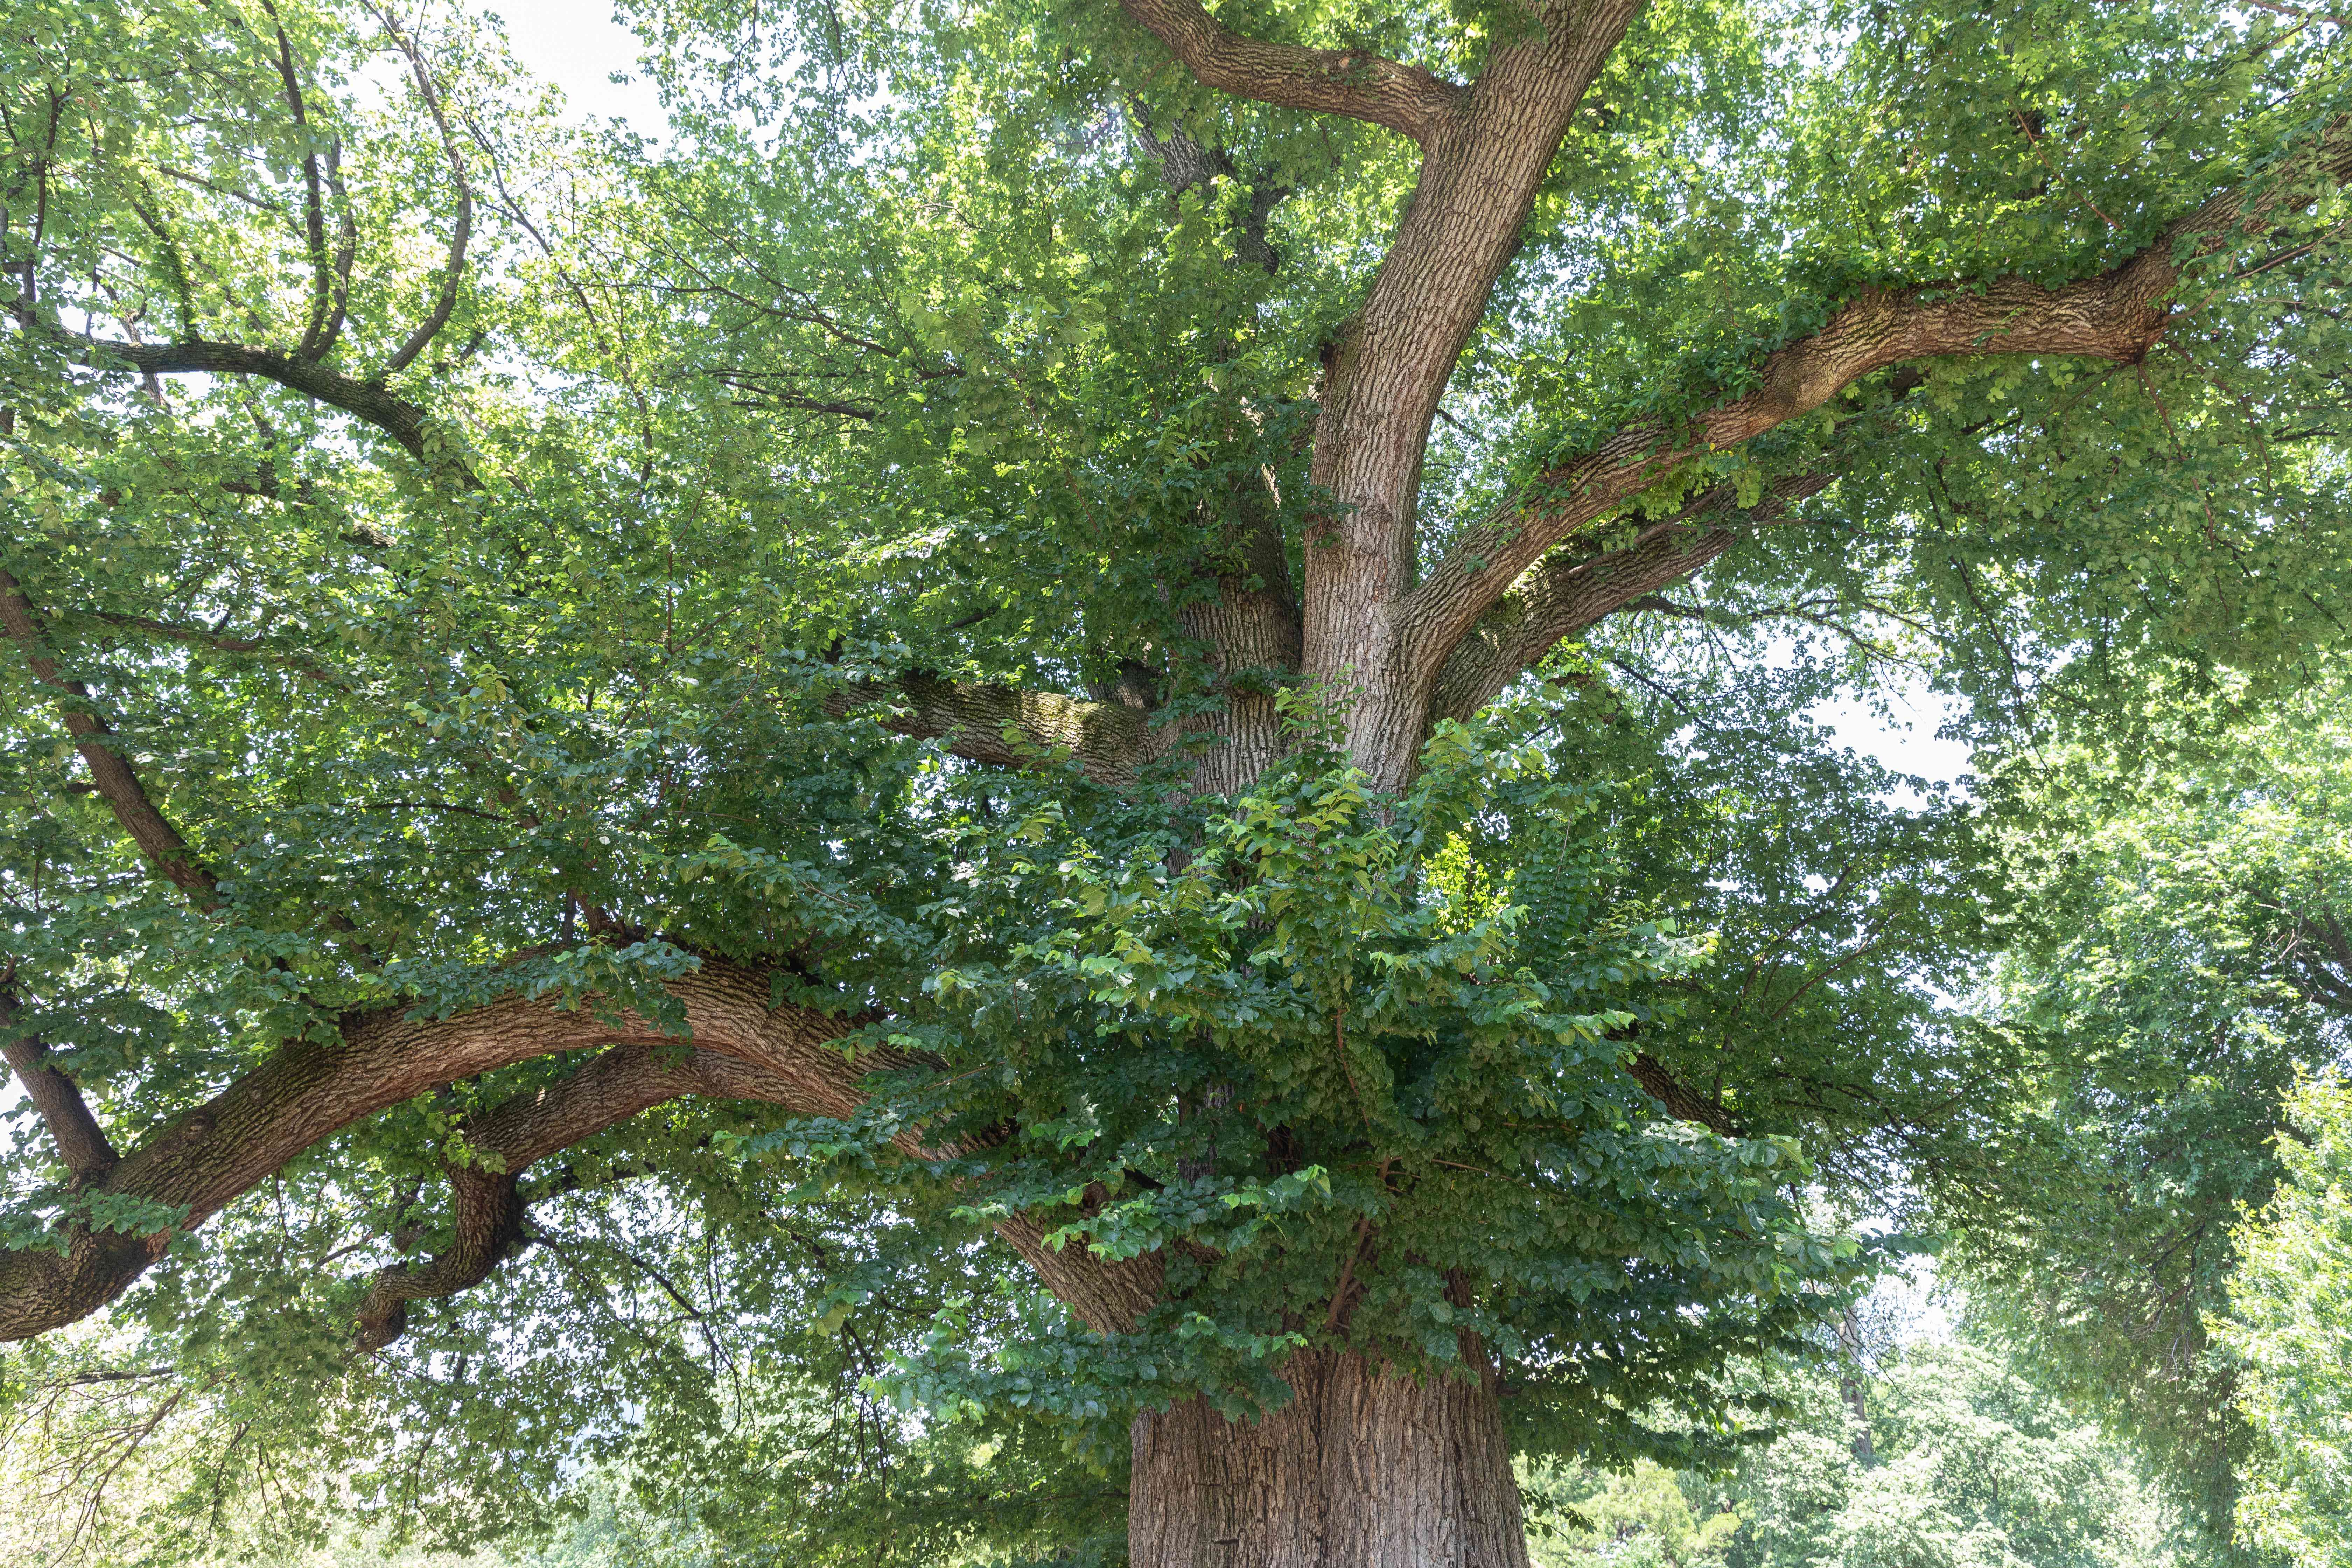 English elm tree with thick trunk and sprawling branches with green leaves